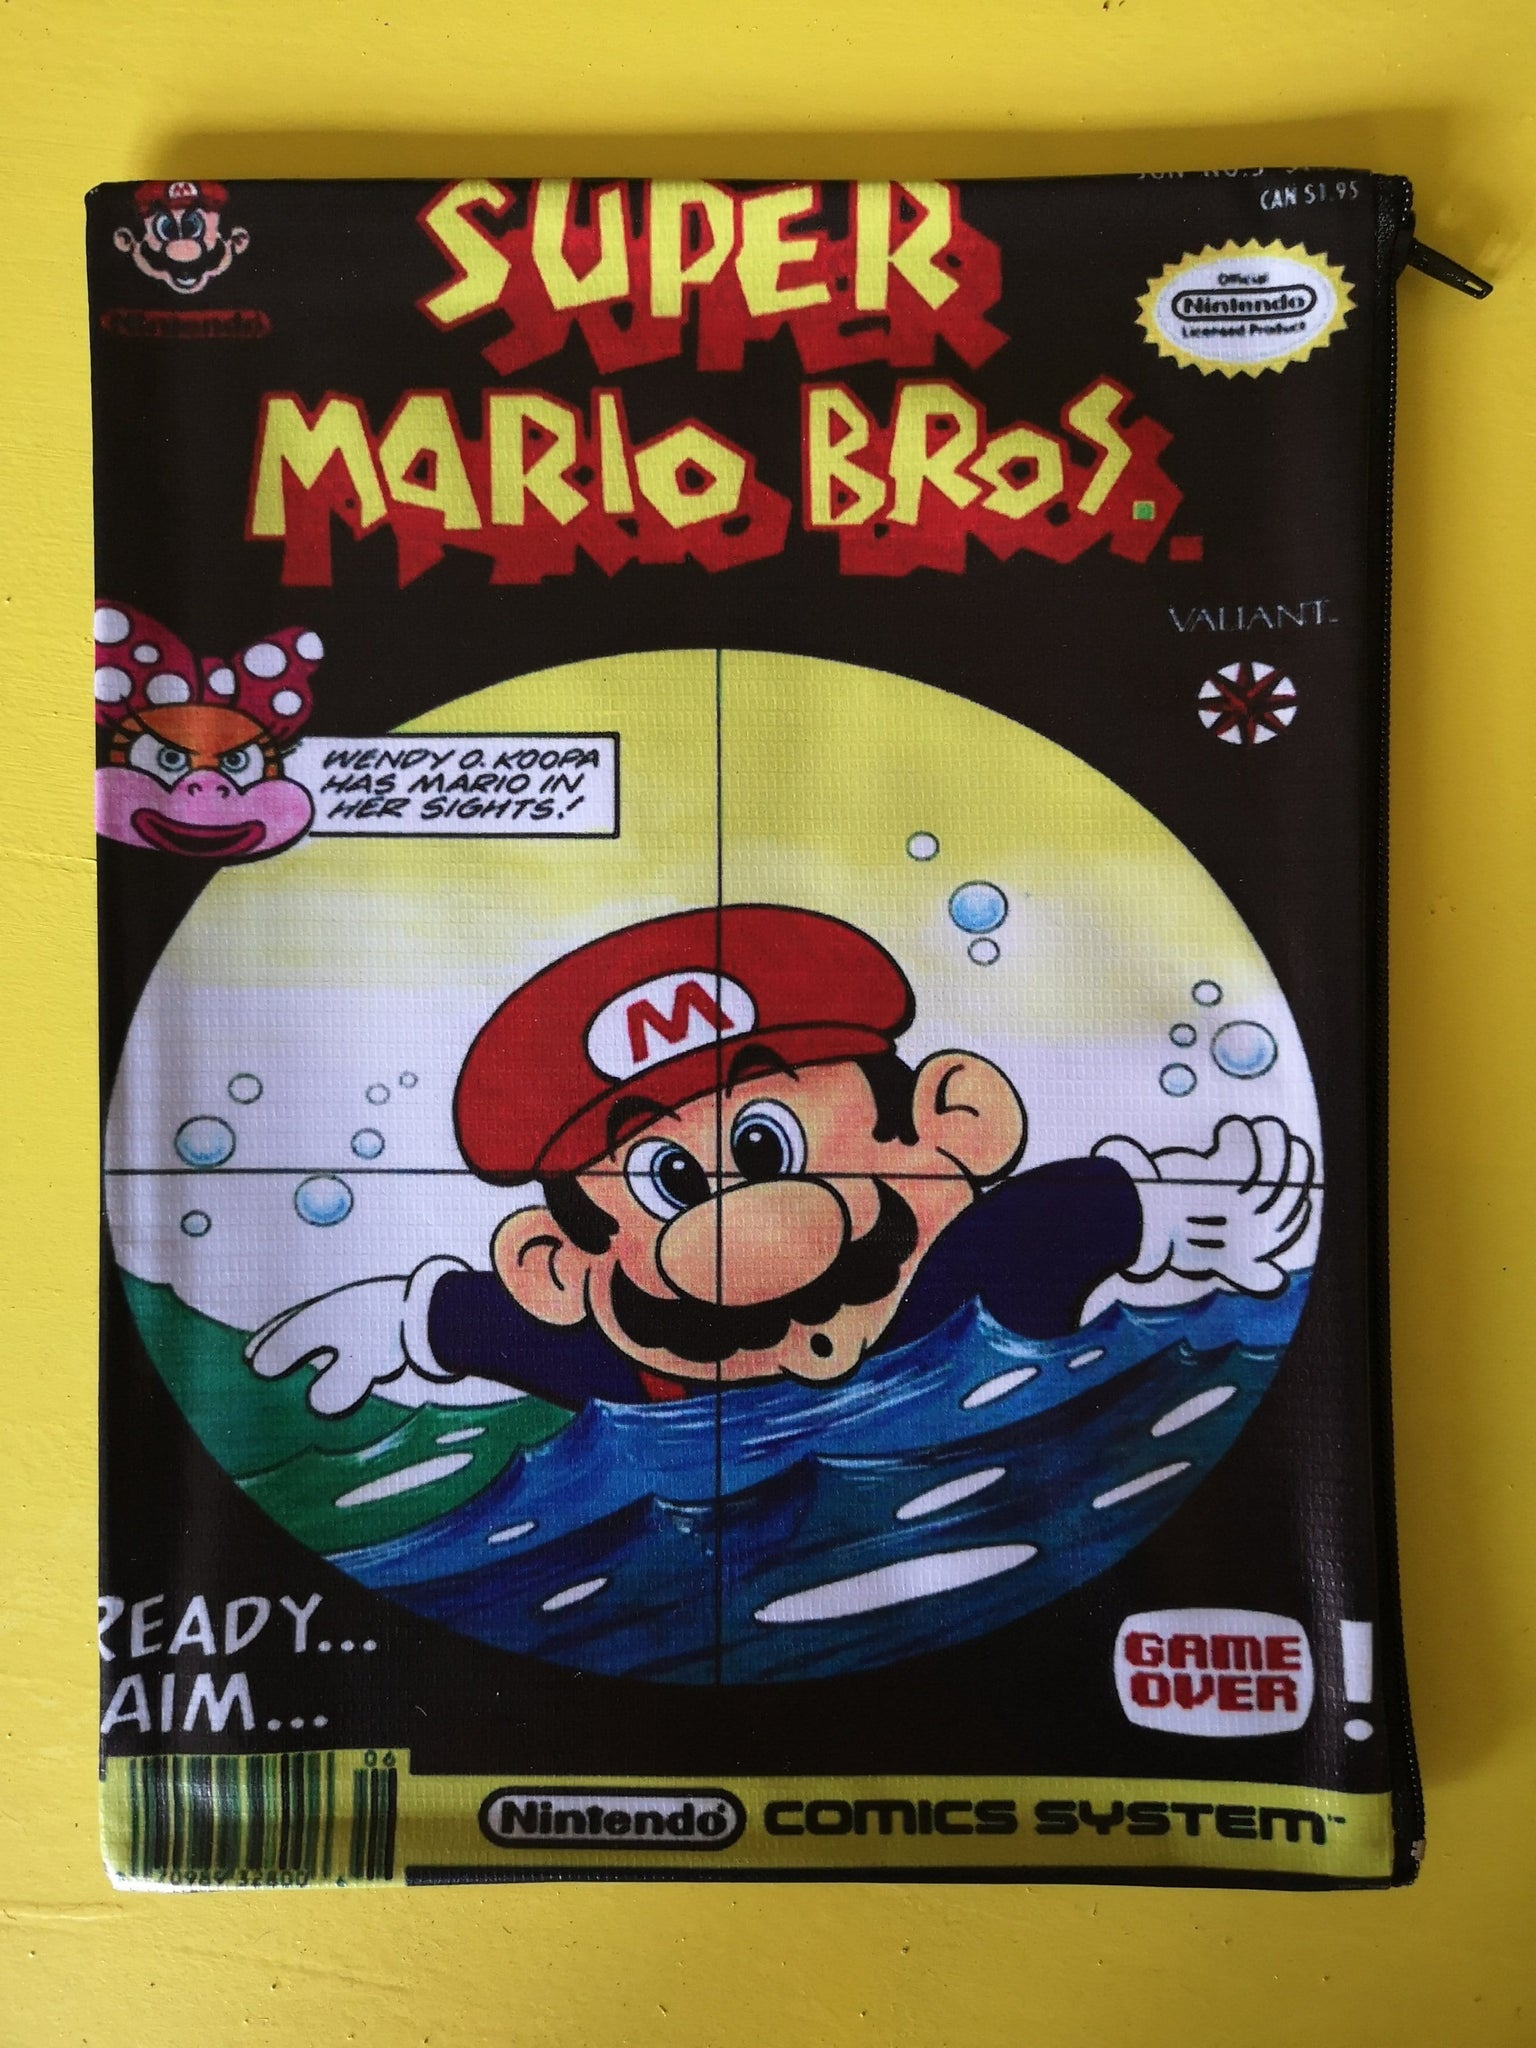 Mario Bros Black cartoon cover clutch